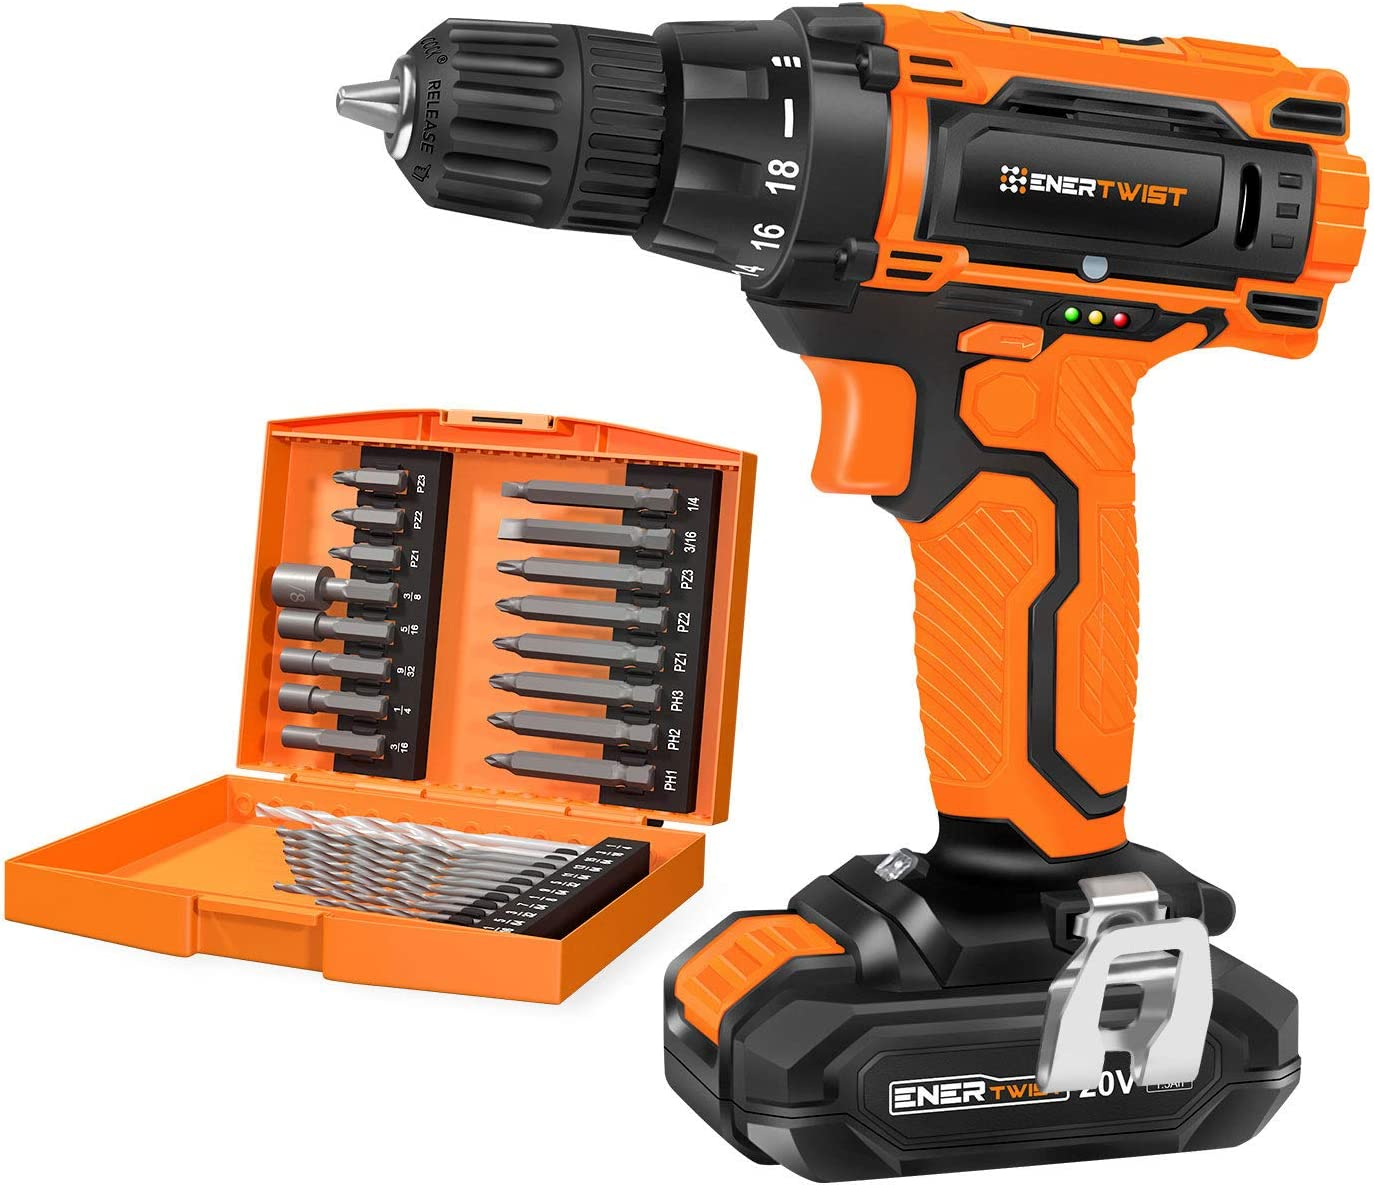 EnerTwist 20V Max Cordless Drill, 3 8 Inch Power Drill Set with Lithium Ion Battery and Charger, Variable Speed, 19 Positions and 28-Pieces Drill Driver Accessories Kit, ET-CD-20